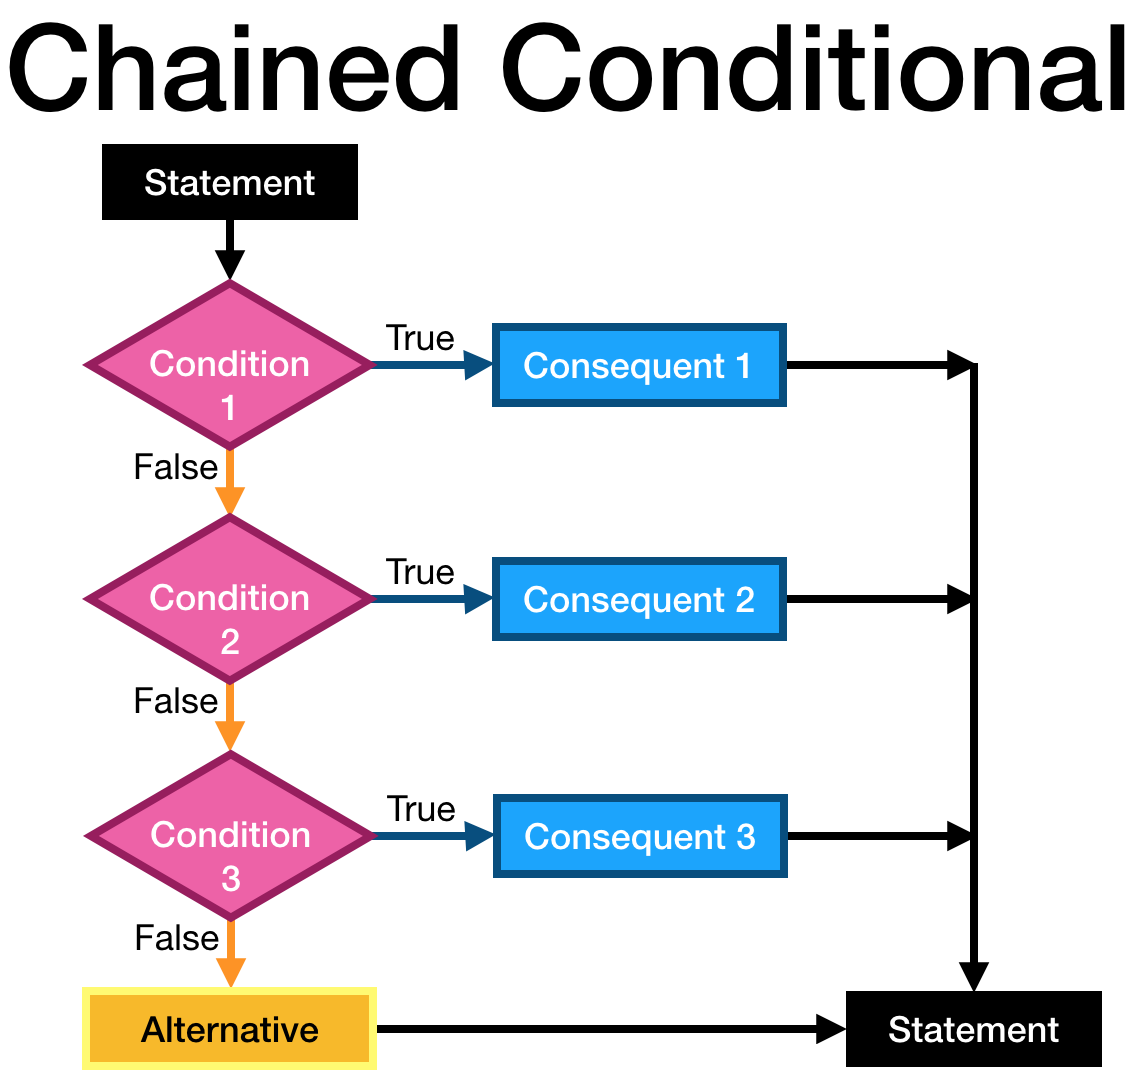 Chained Conditional Flowchart.png